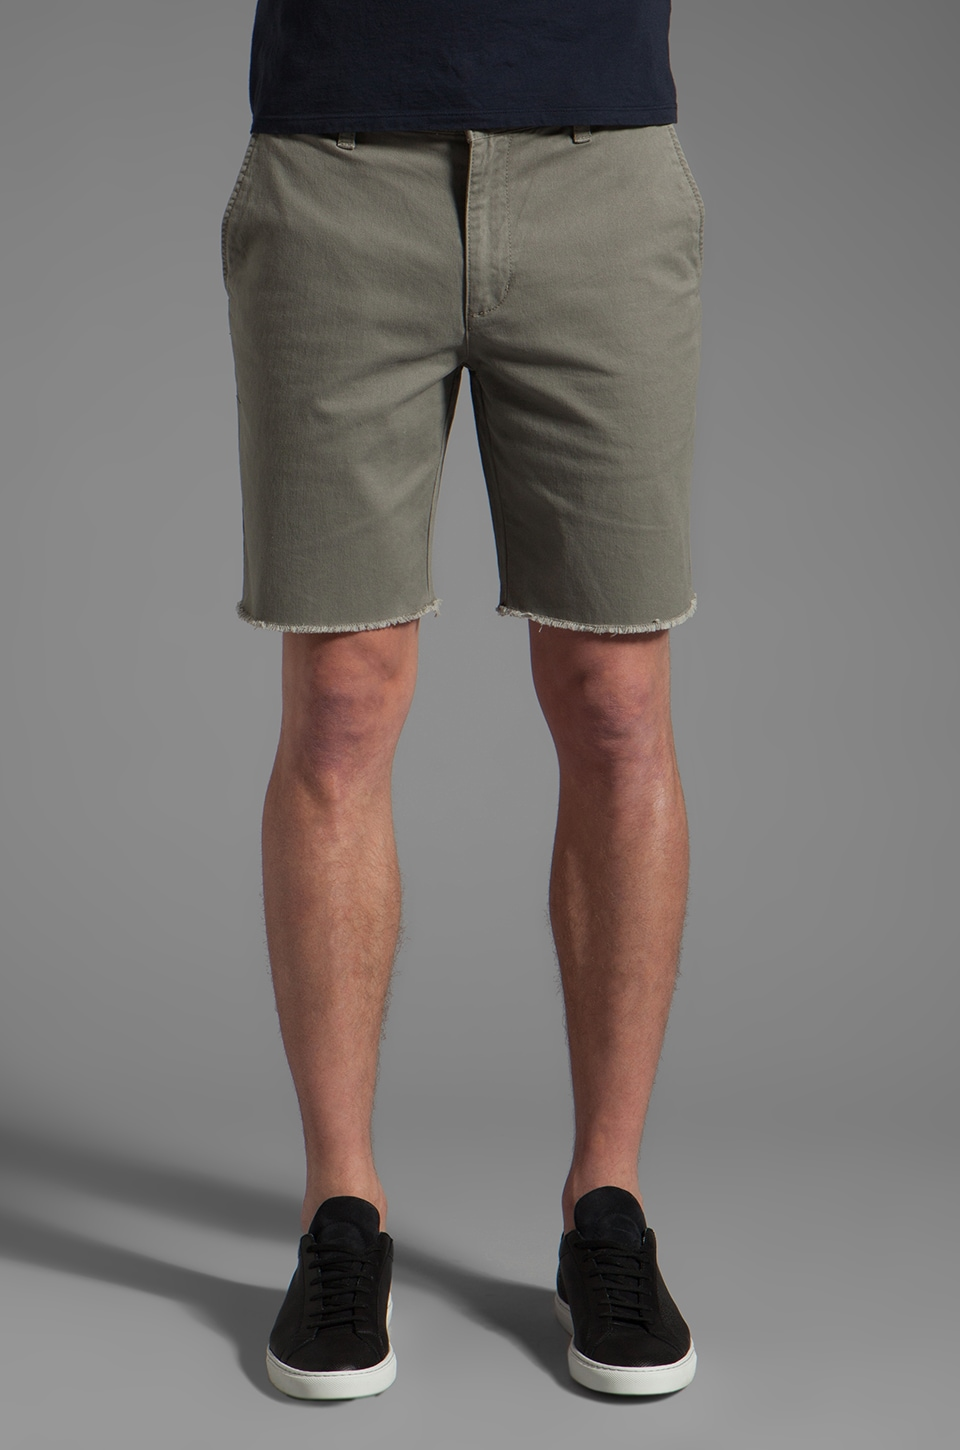 RVCA All Time Cut Off Short in Olive Mute